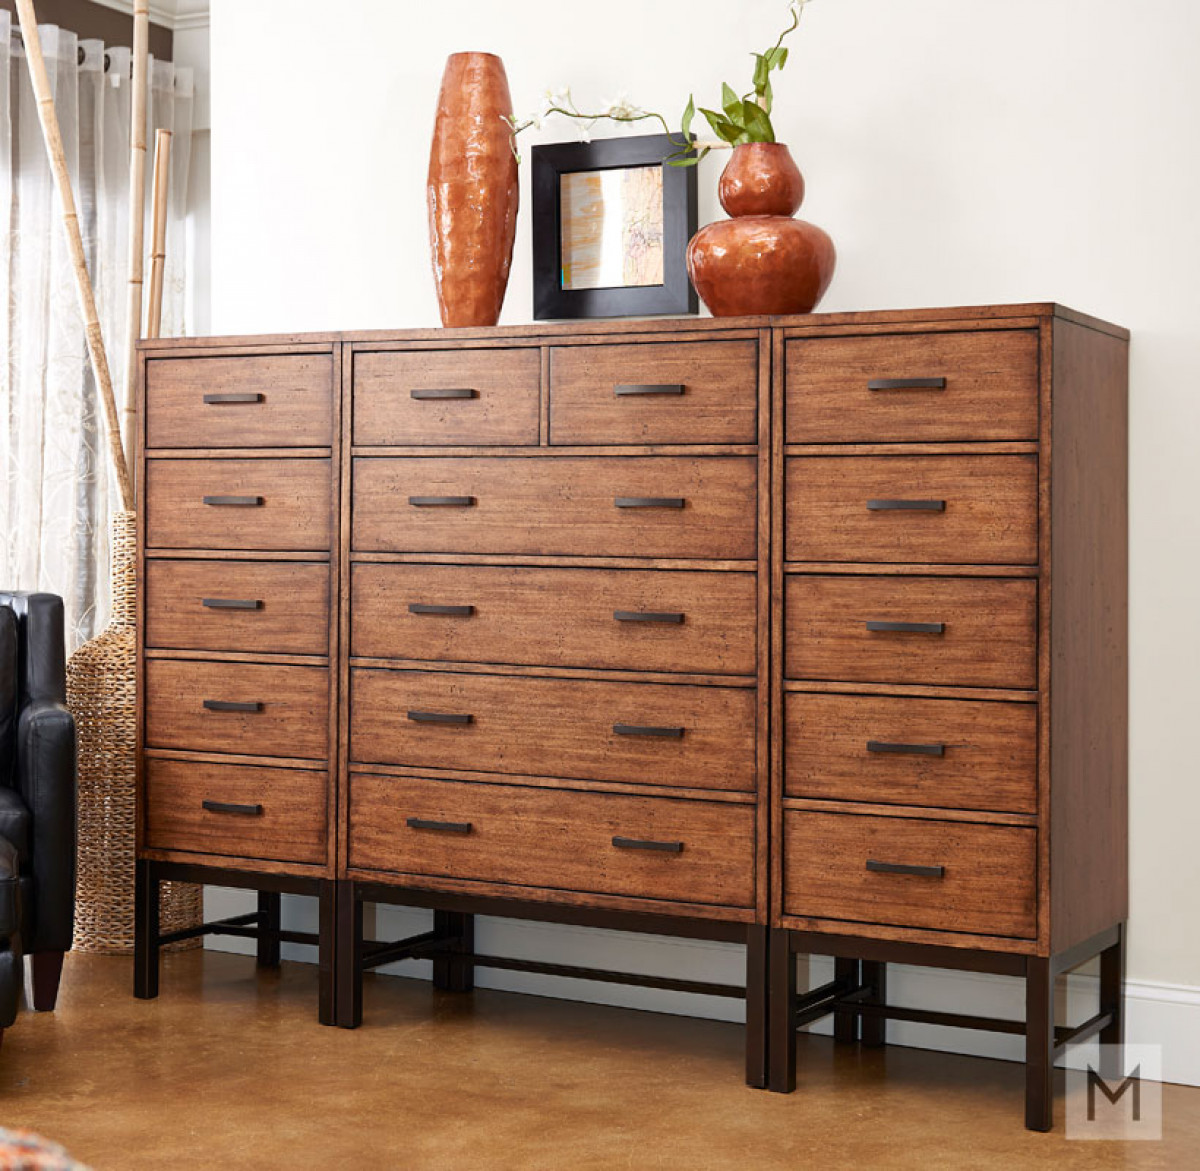 Affinity Five Drawer Lingerie Chest in Mango with a Rustic Finish